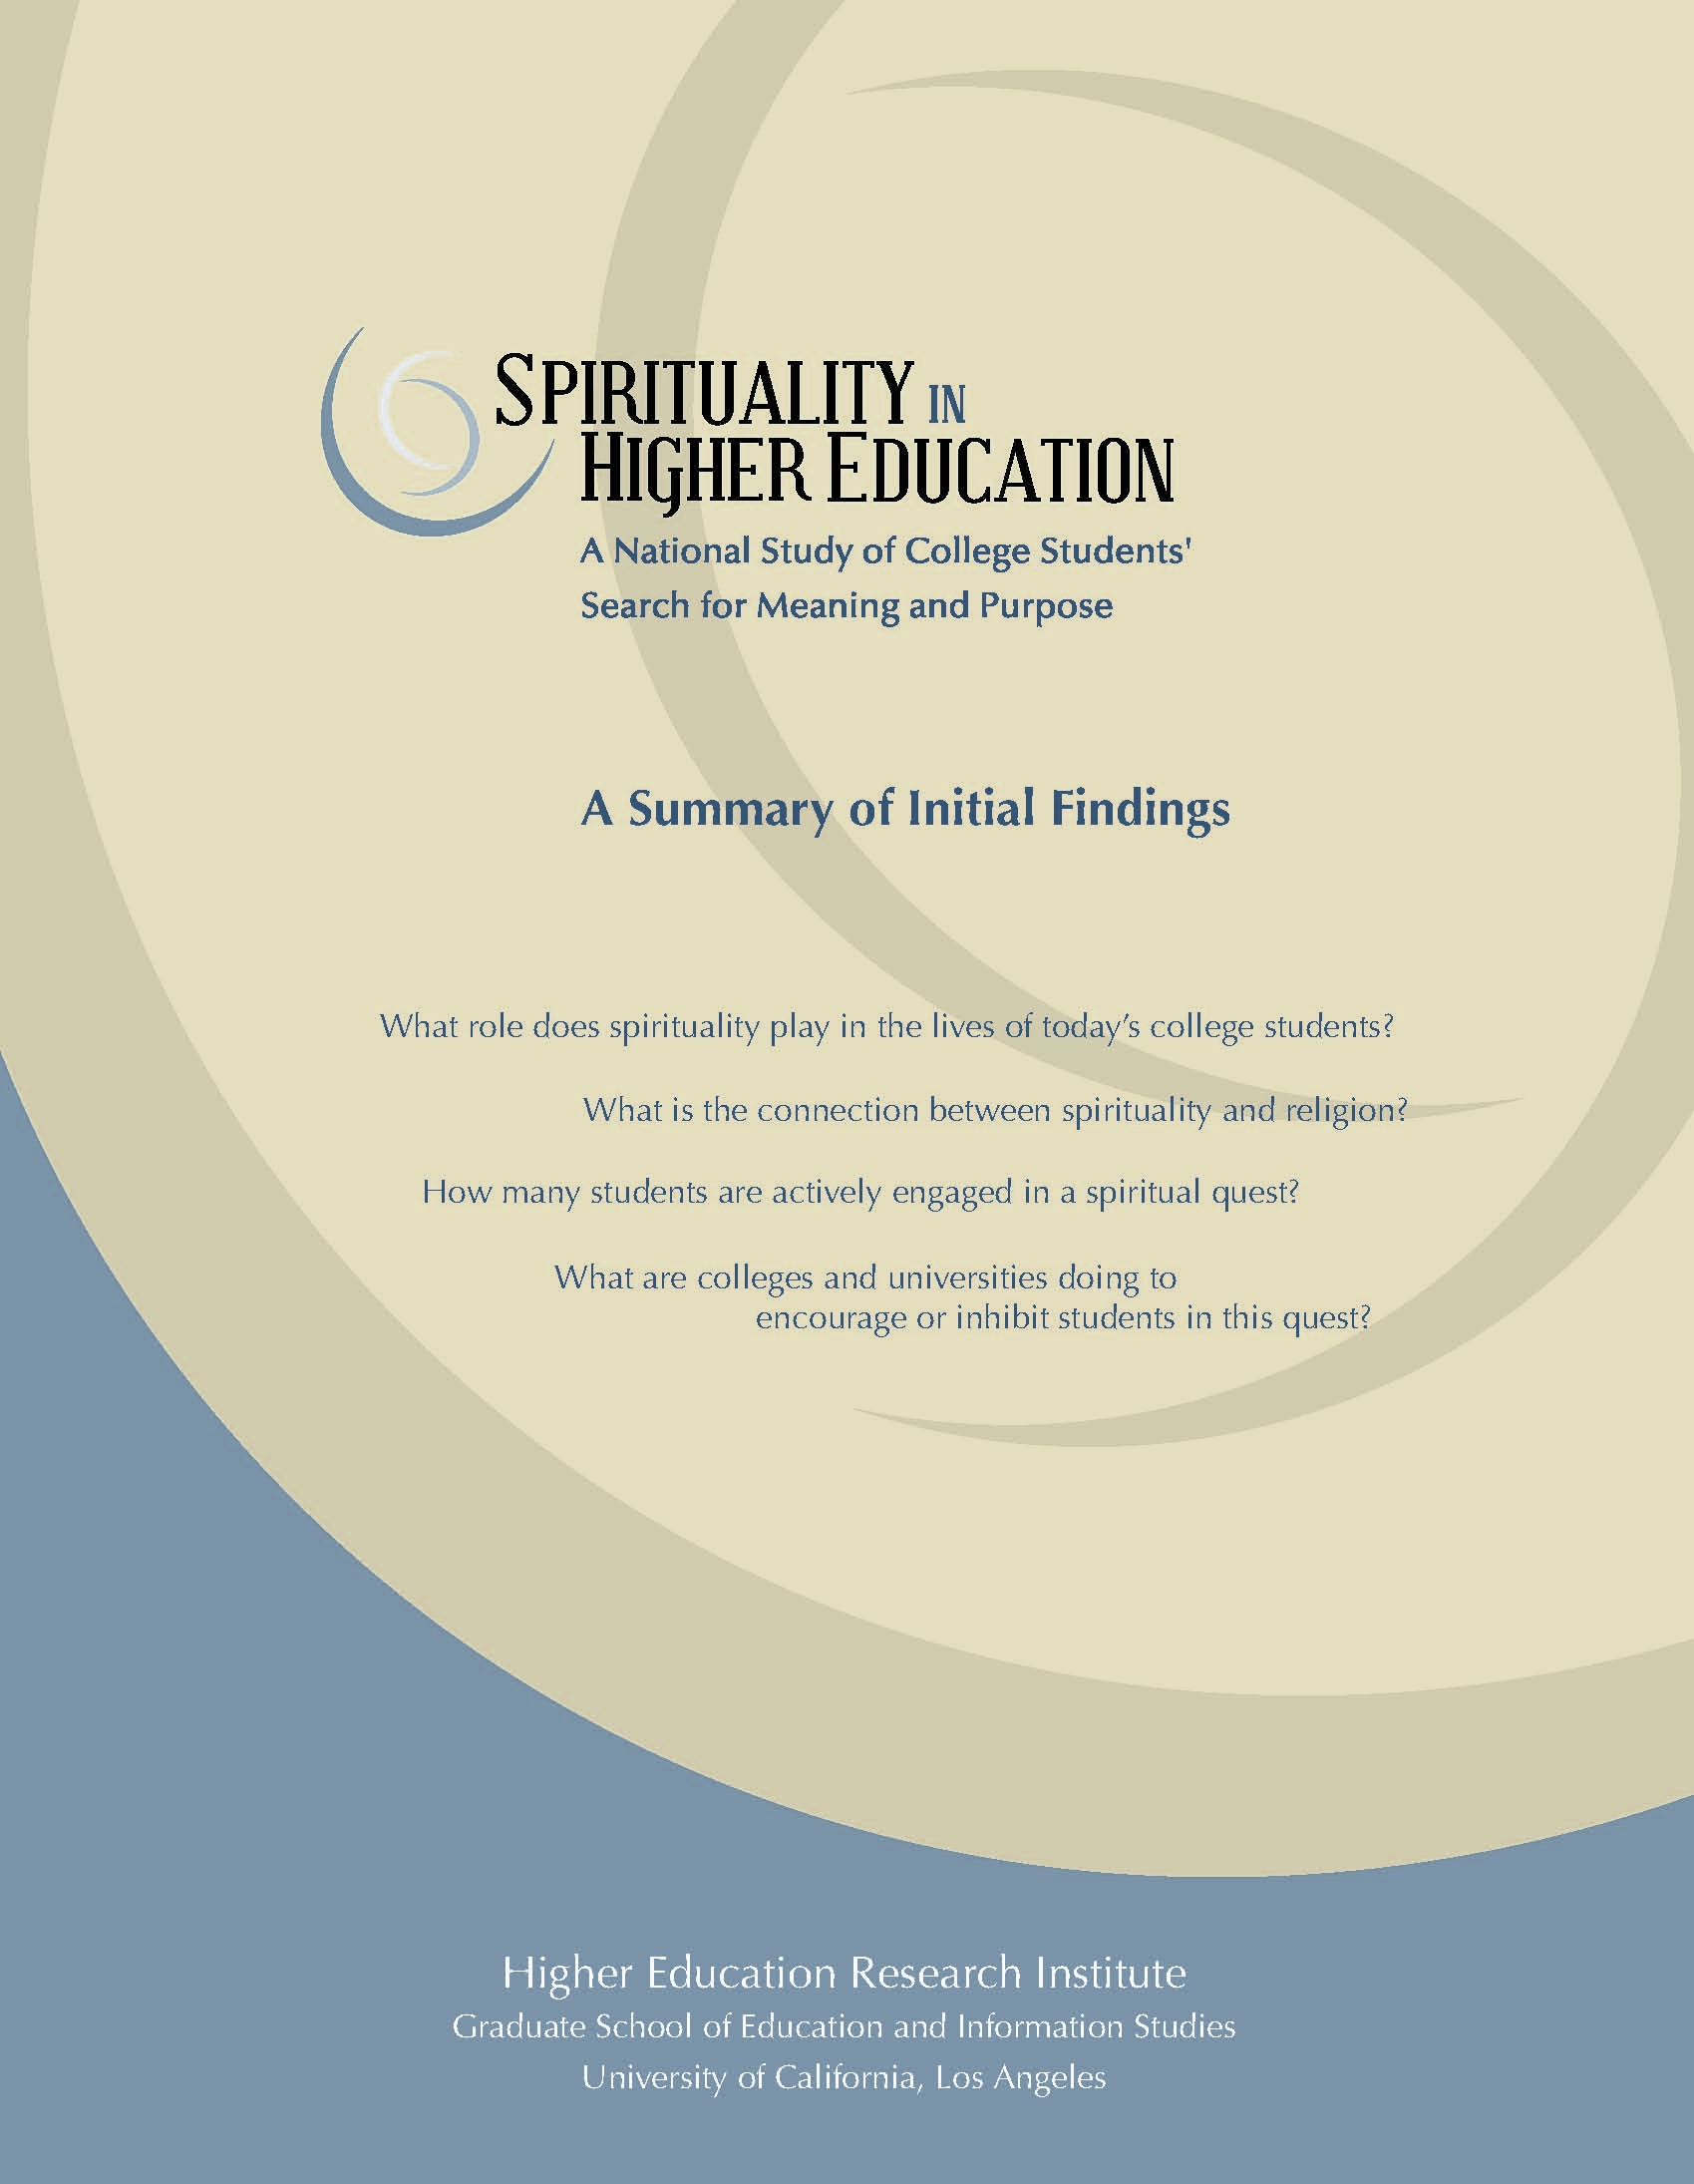 research reports spirituality in higher education summary selected findings